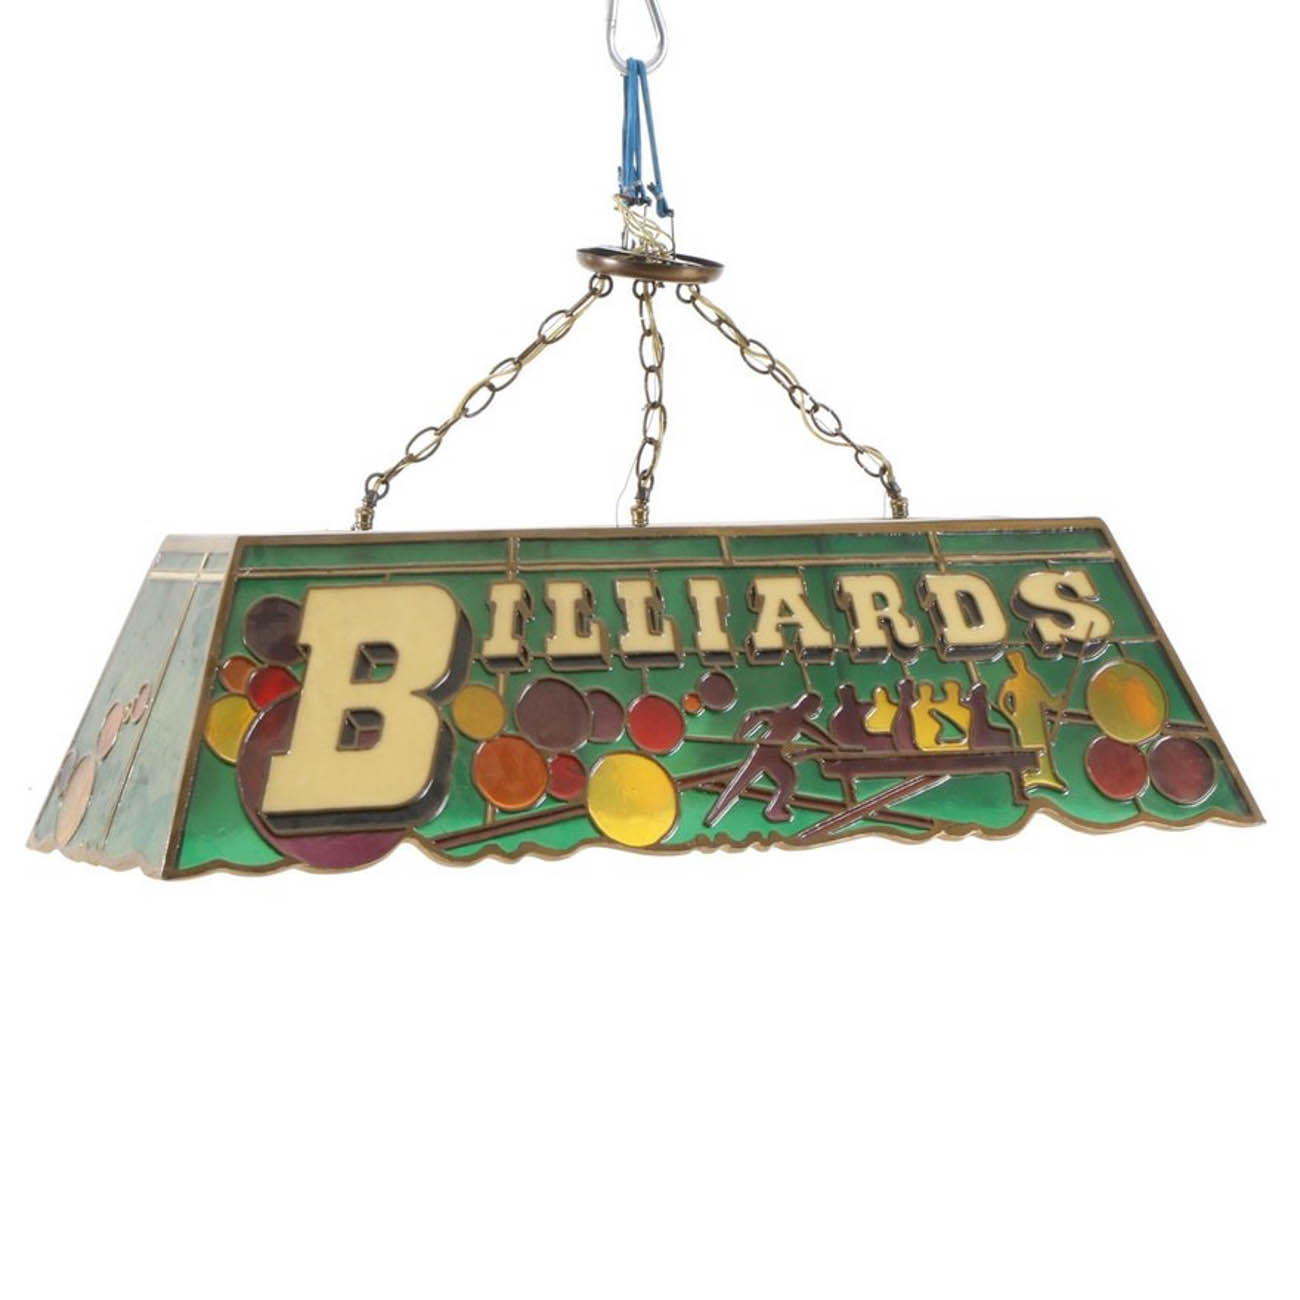 <p>A billiards ceiling lamp from the Cincinnati Reds Clubhouse / Image courtesy of Everything But The House (EBTH) // Published: 12.6.18</p>